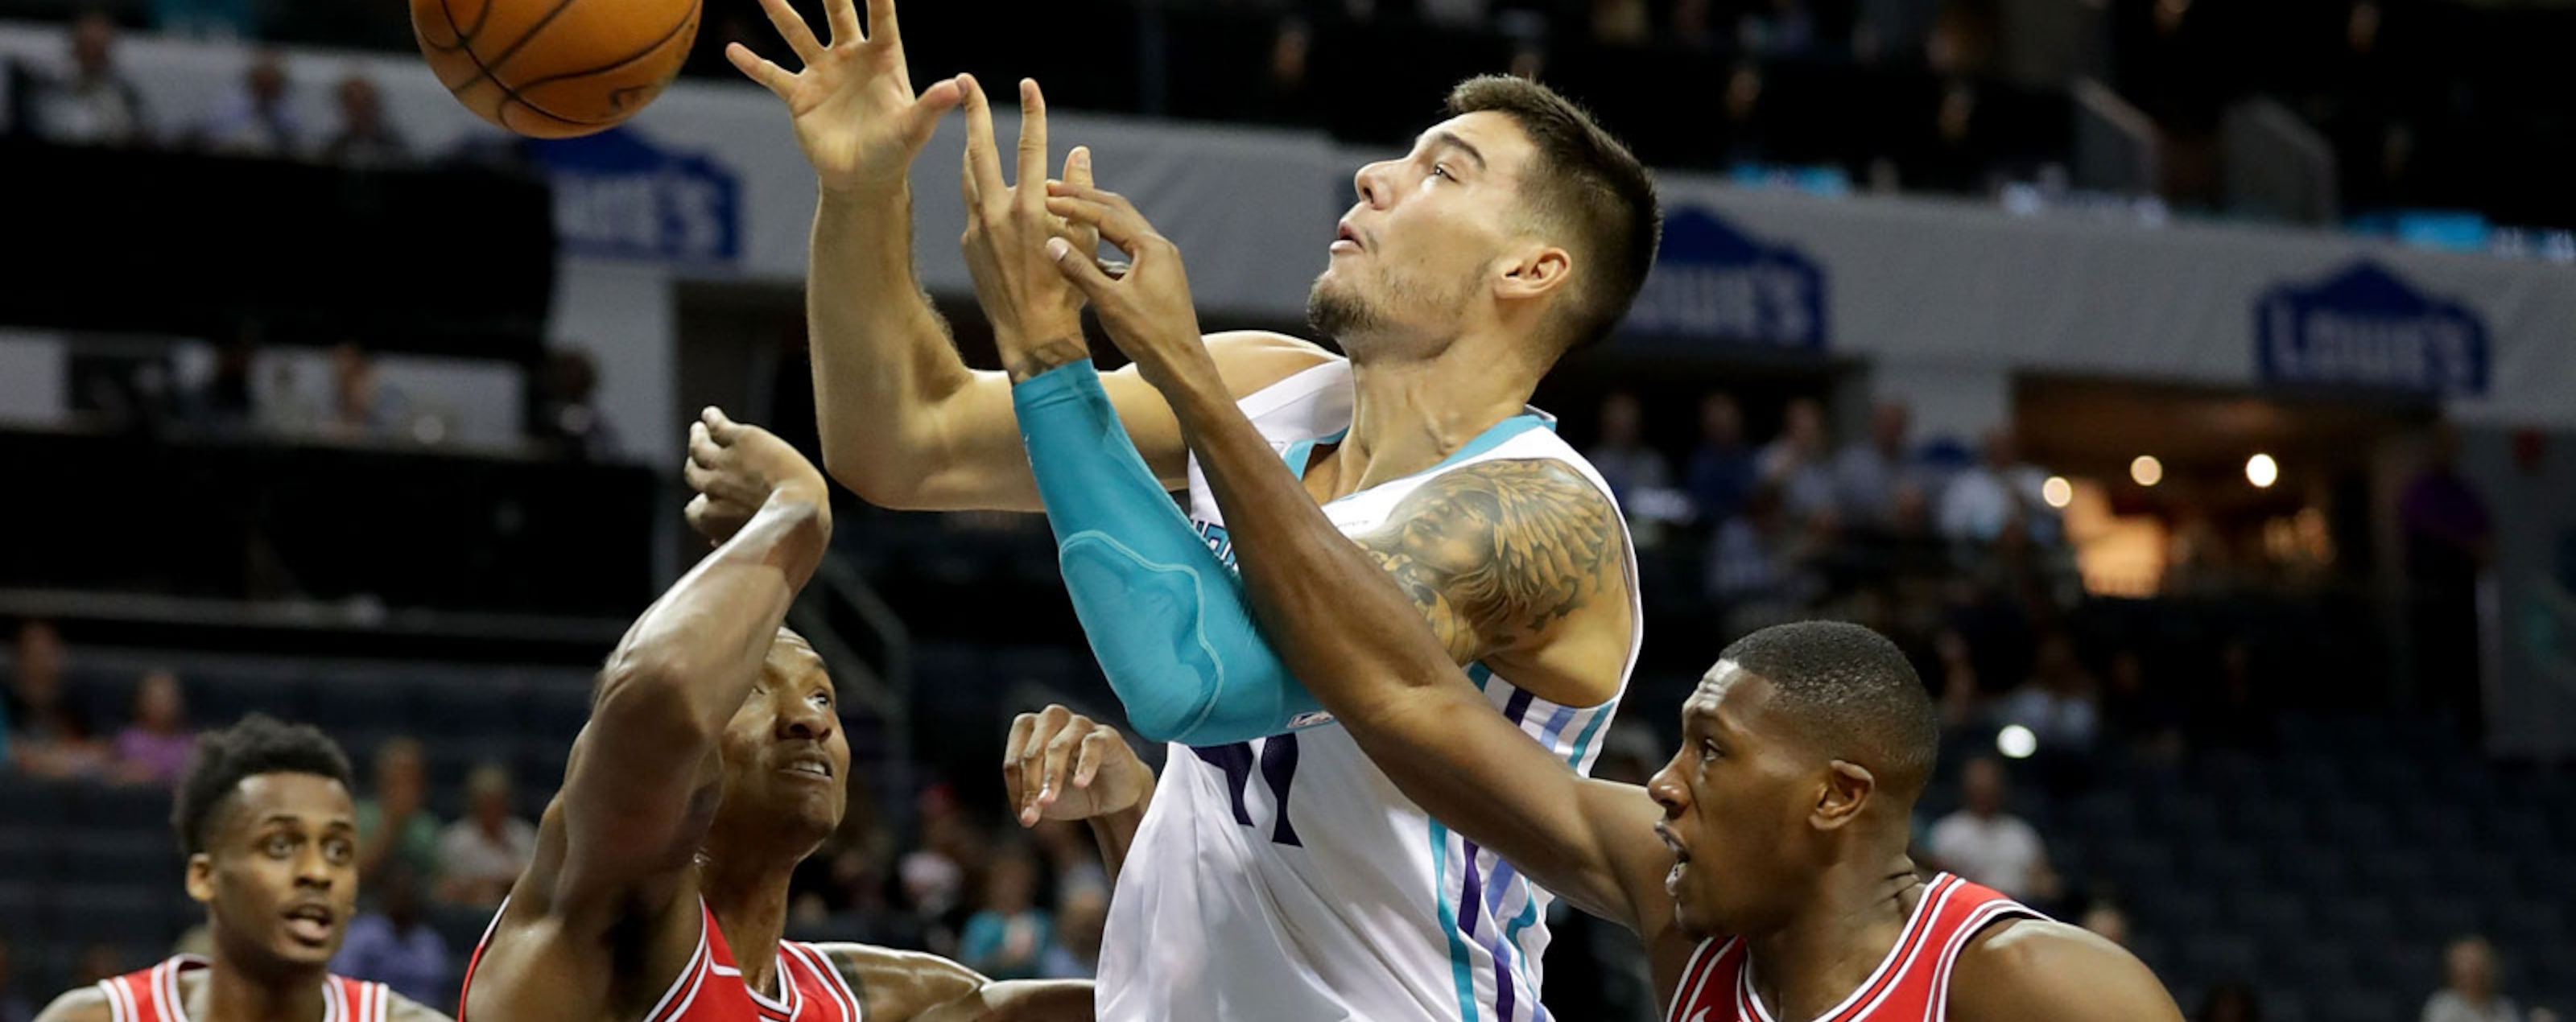 Teammates Wendell Carter Jr. #34 and Kris Dunn #32 of the Chicago Bulls try to stop Willy Hernangomez #41 of the Charlotte Hornets during their game at Spectrum Center on October 8, 2018 in Charlotte, North Carolina.